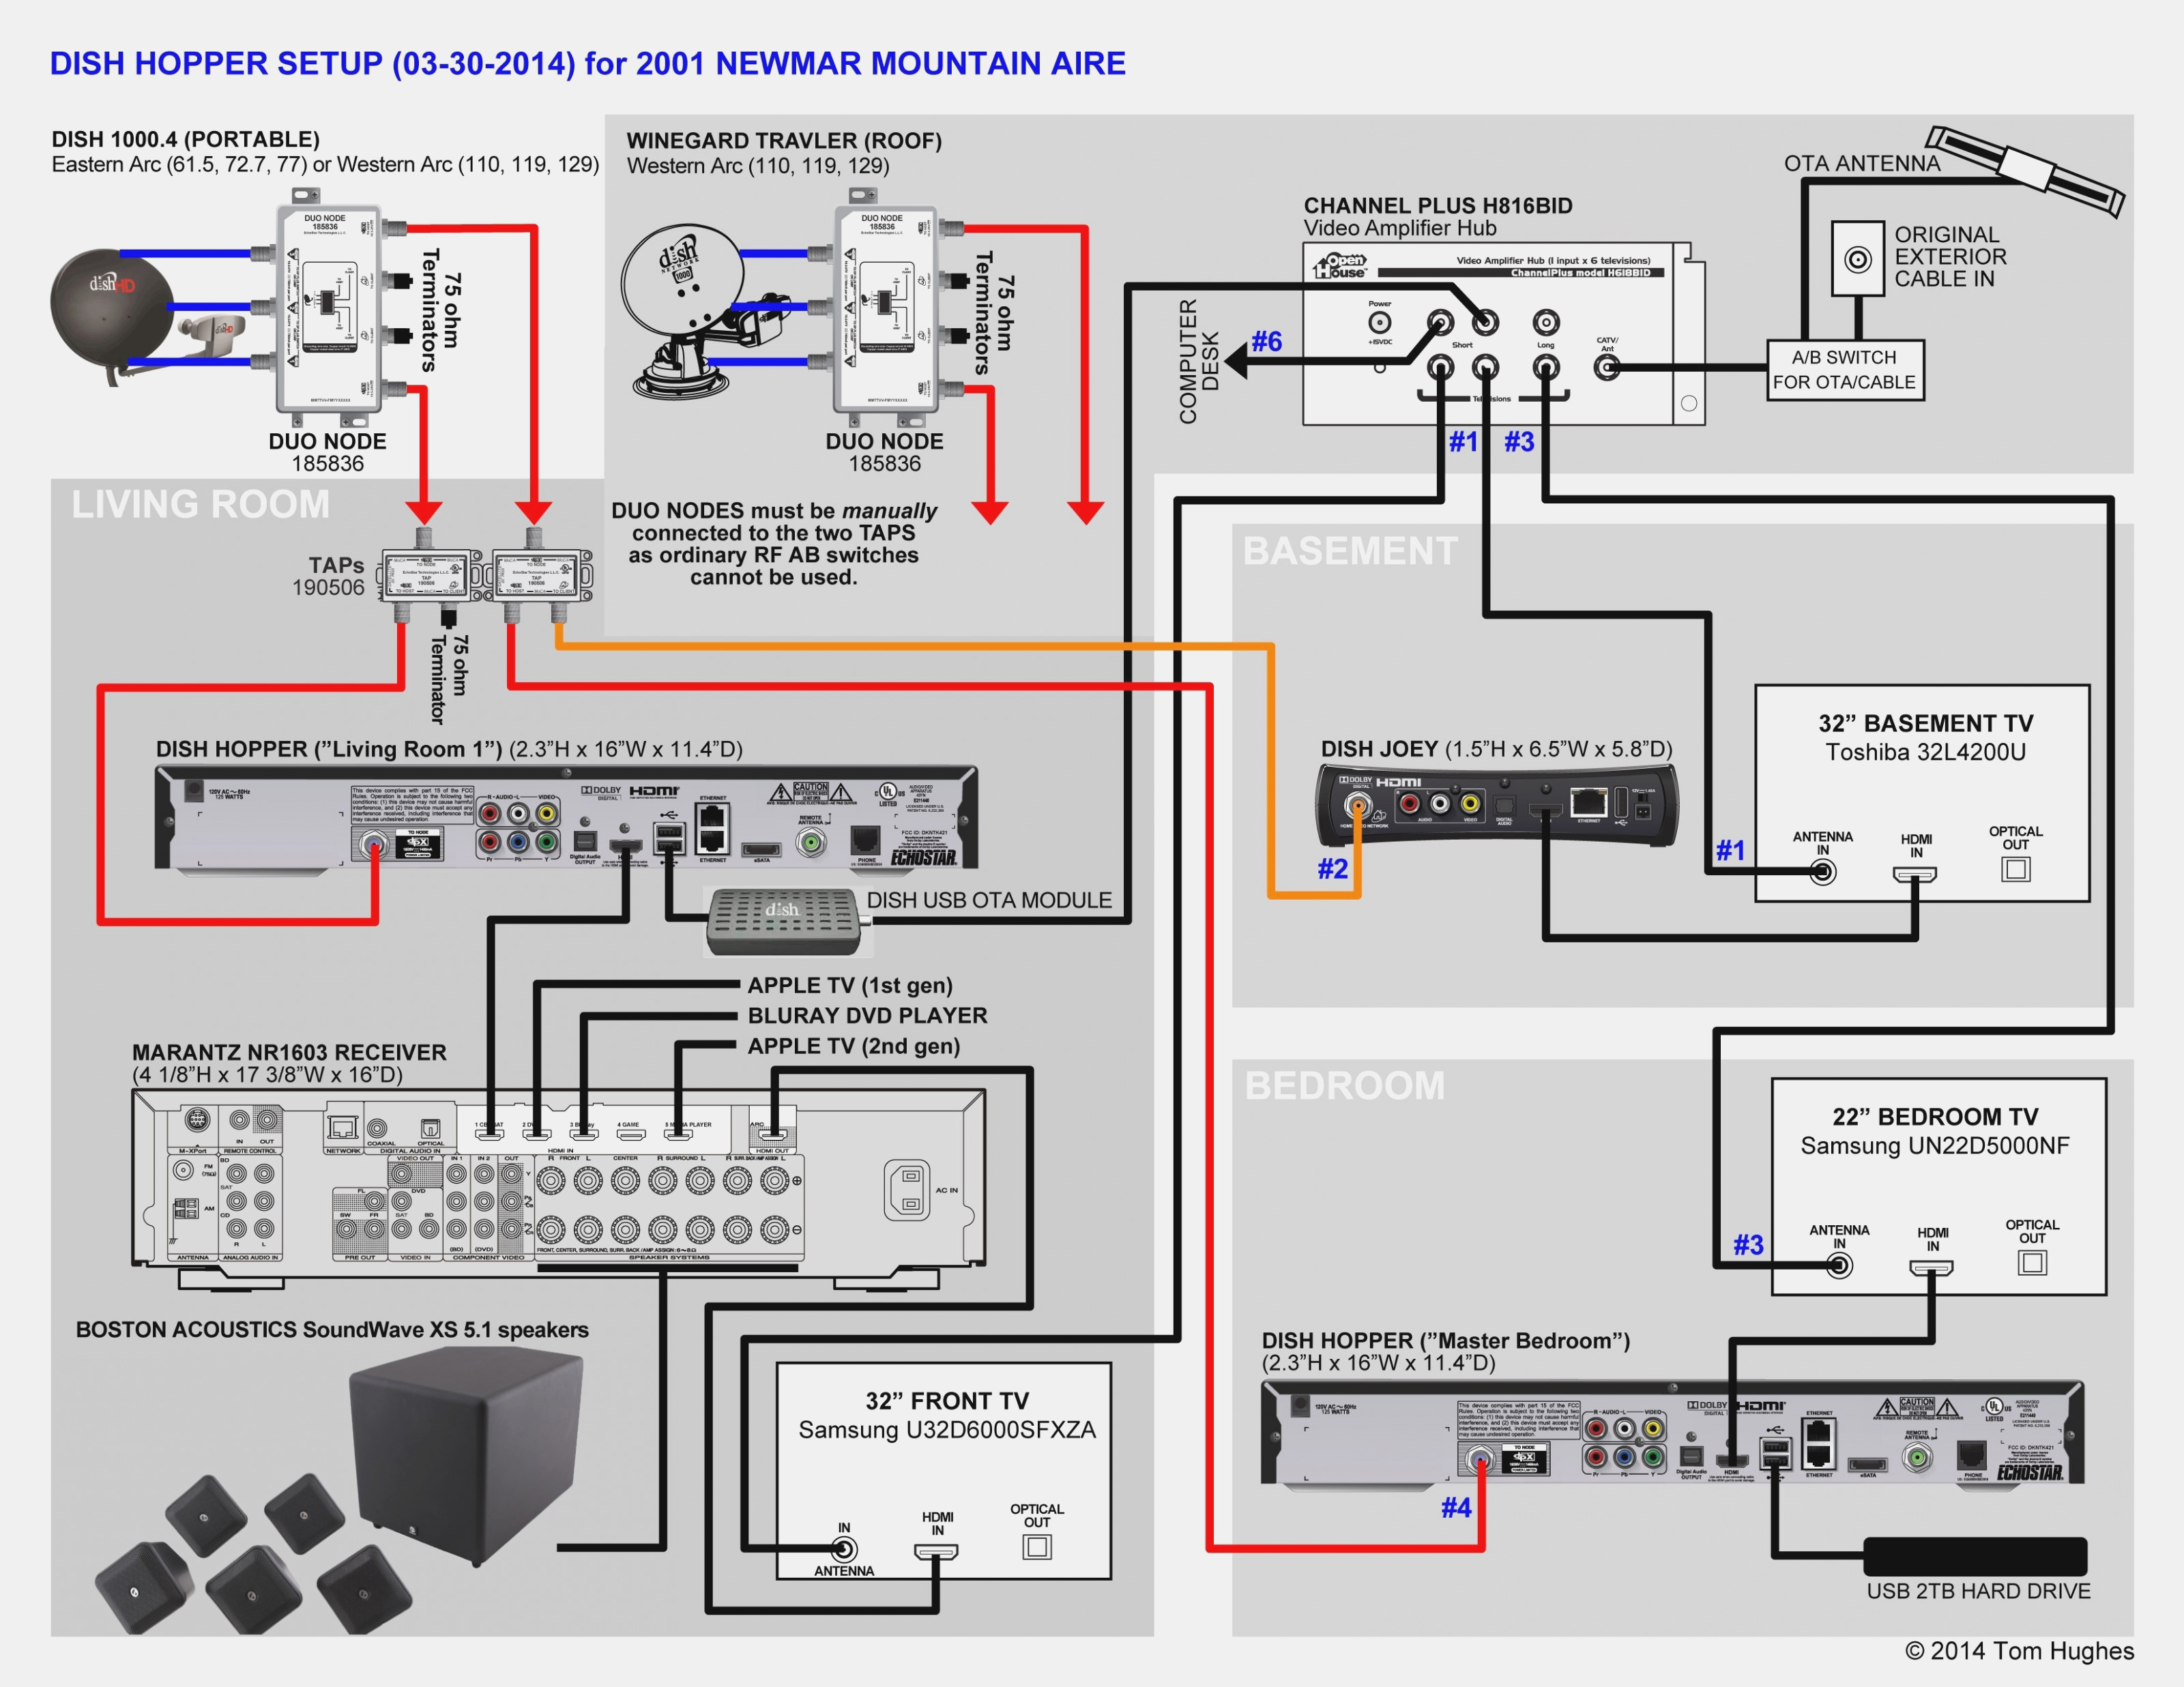 Pleasing Att Uverse Wiring Diagram Wirings Diagram Wiring Cloud Pimpapsuggs Outletorg